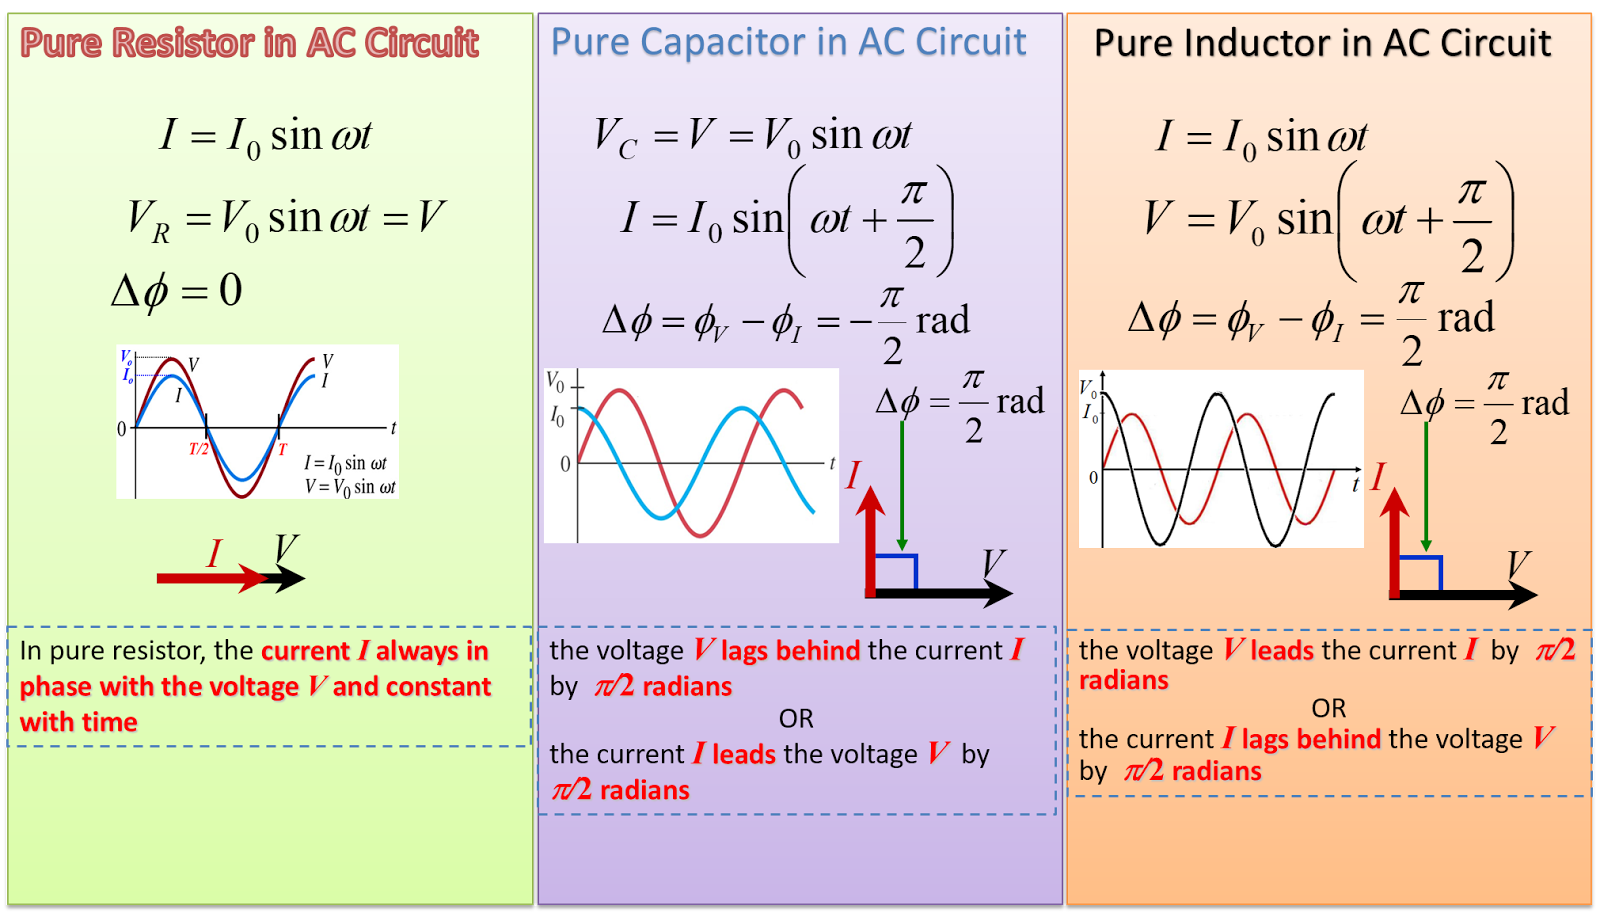 Sf026 Rohit Ac 2 R C L In Circuits Circuit For Dummies At February 11 2018